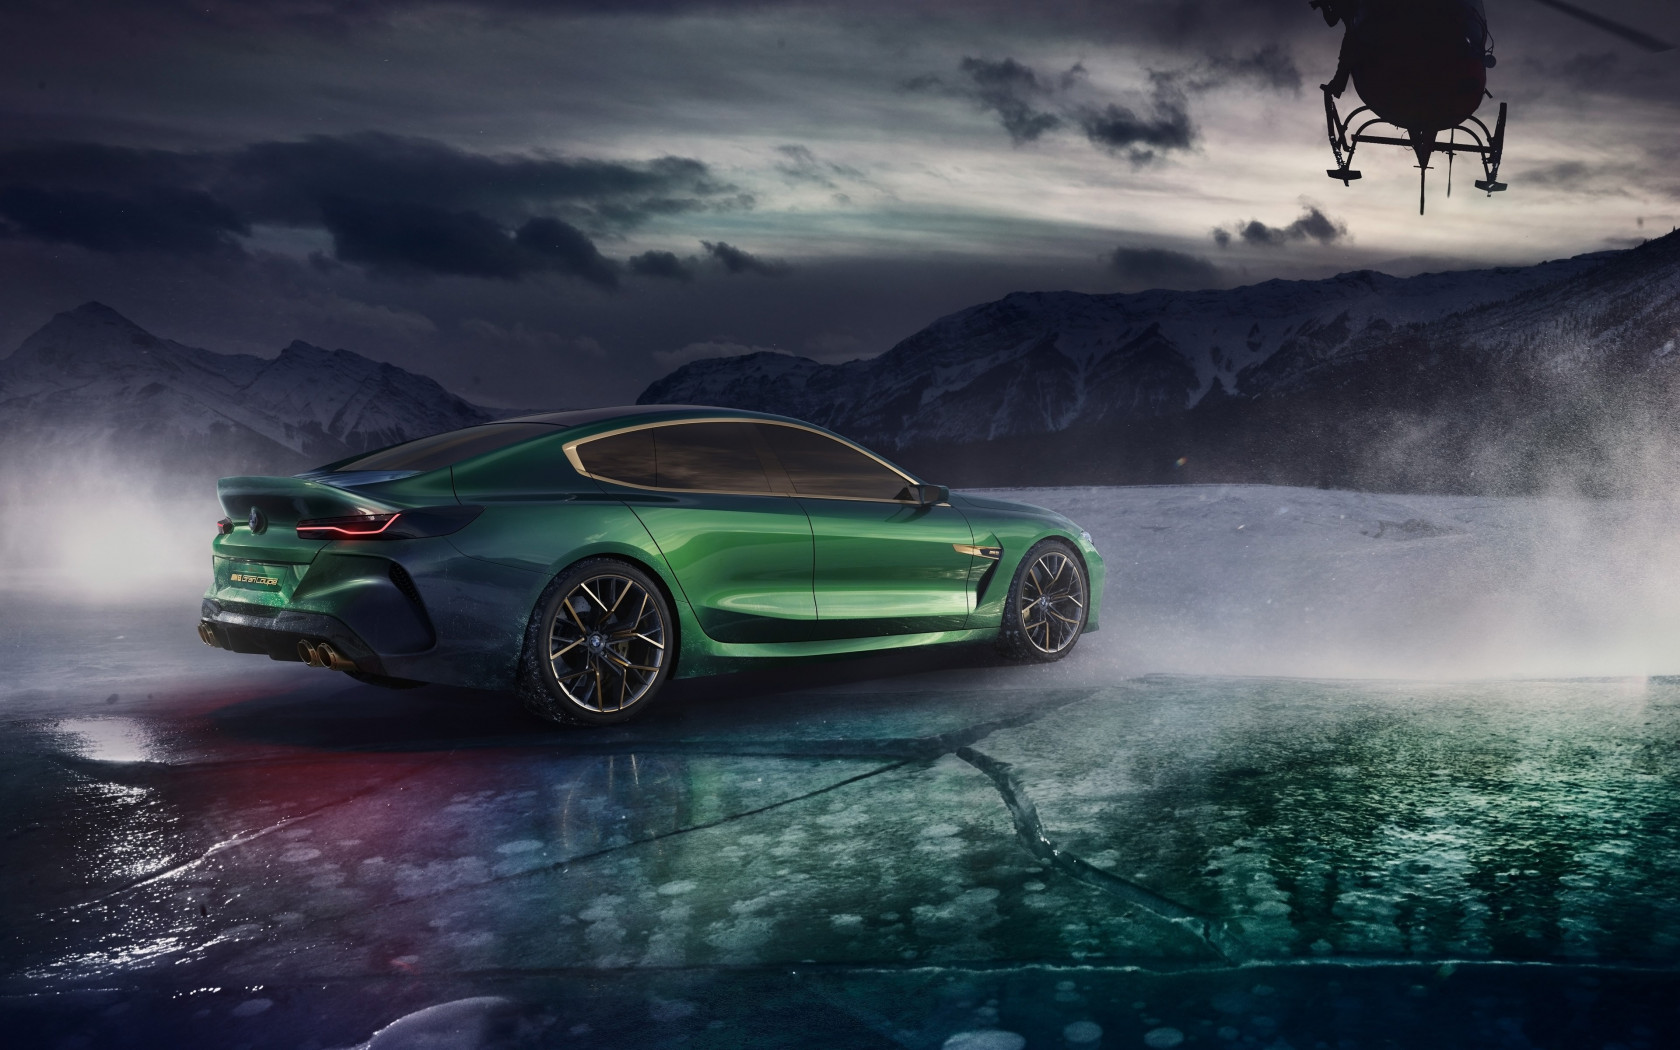 BMW Concept M8 Gran Coupe 2018 rear side wallpaper 1680x1050